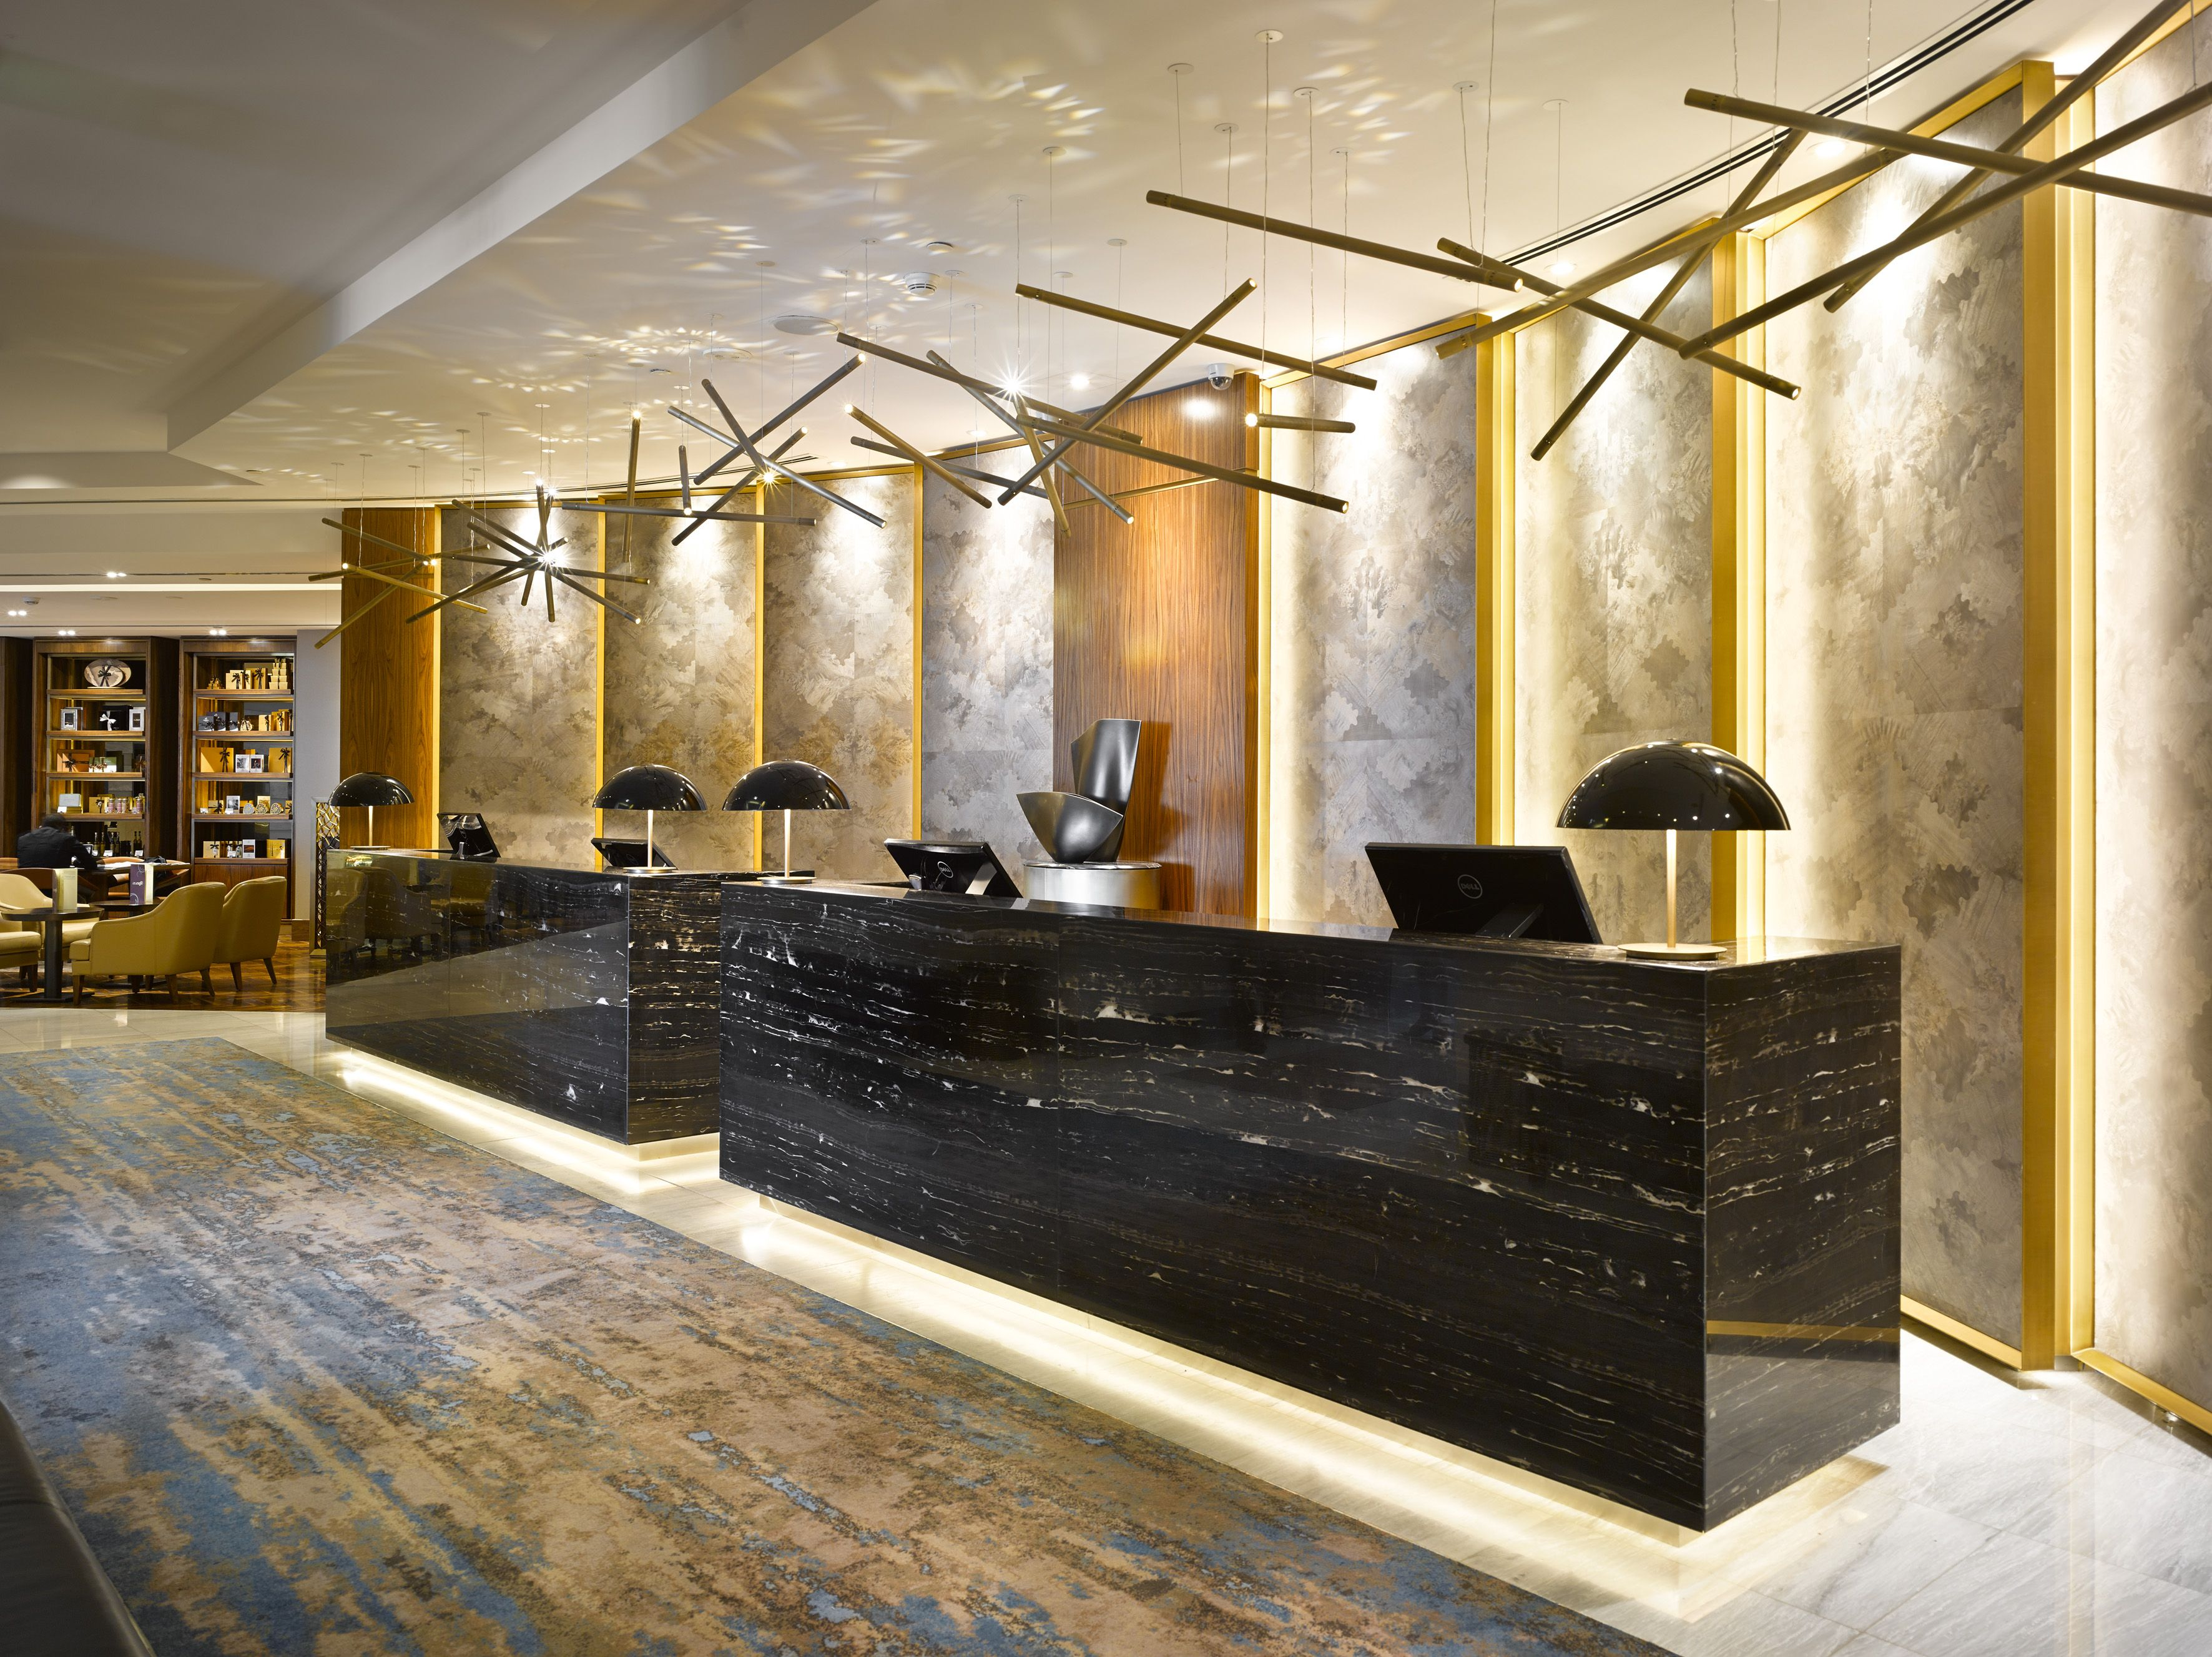 desk lighting solutions. The Lighting Solutions For Reception Desk And Reading Lounge Were Created In\u2026 S